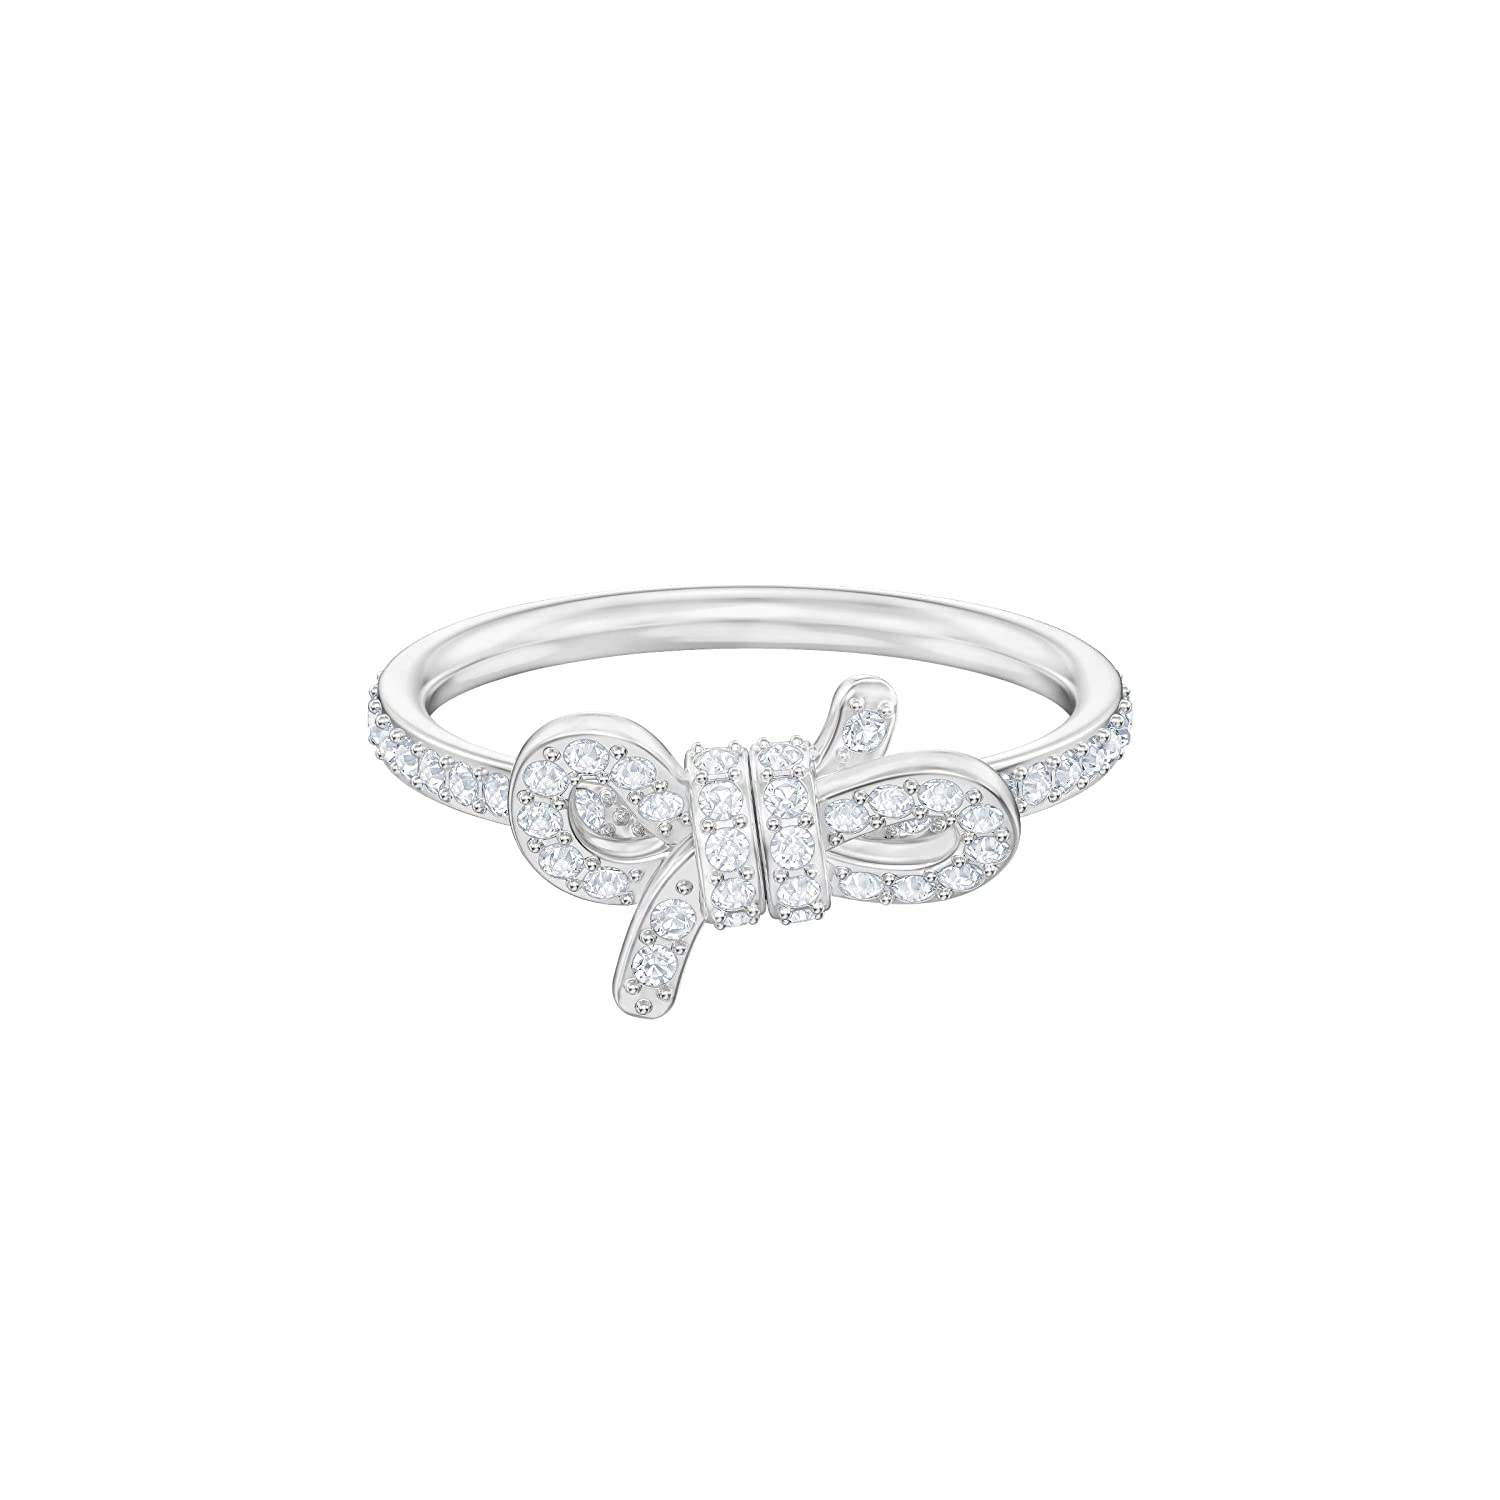 83c3511a3 Swarovski Lifelong Small Bow Ring, White, Rhodium Plating: Amazon.co.uk:  Jewellery